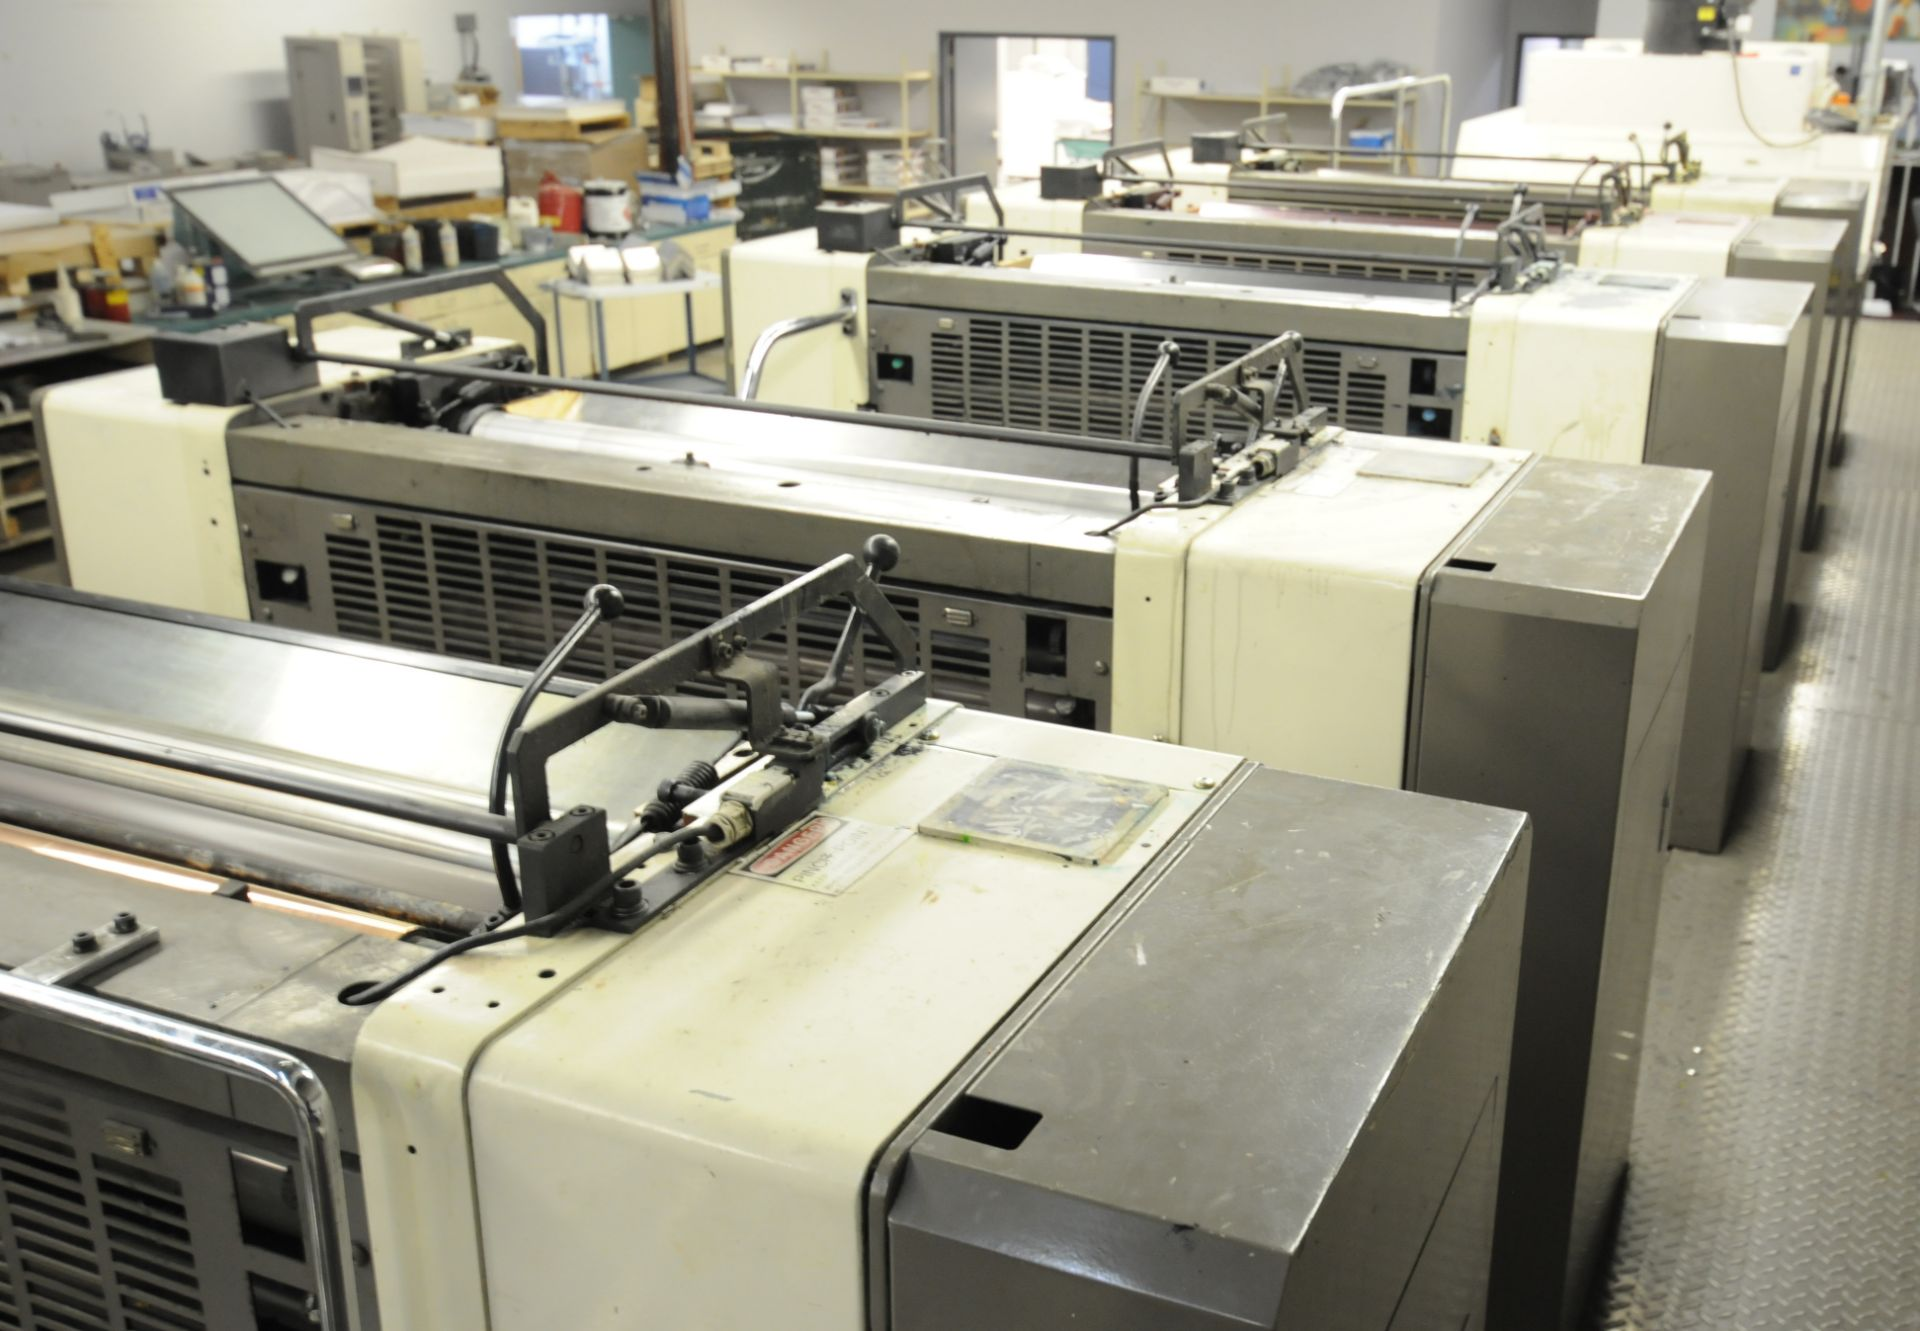 """Lot 20 - MITSUBISHI (2000) 3FR-5 (5) COLOR, 40""""X28"""" SHEET-FEED OFFSET PERFECTOR PRESS WITH FULLY INTEGRATED"""